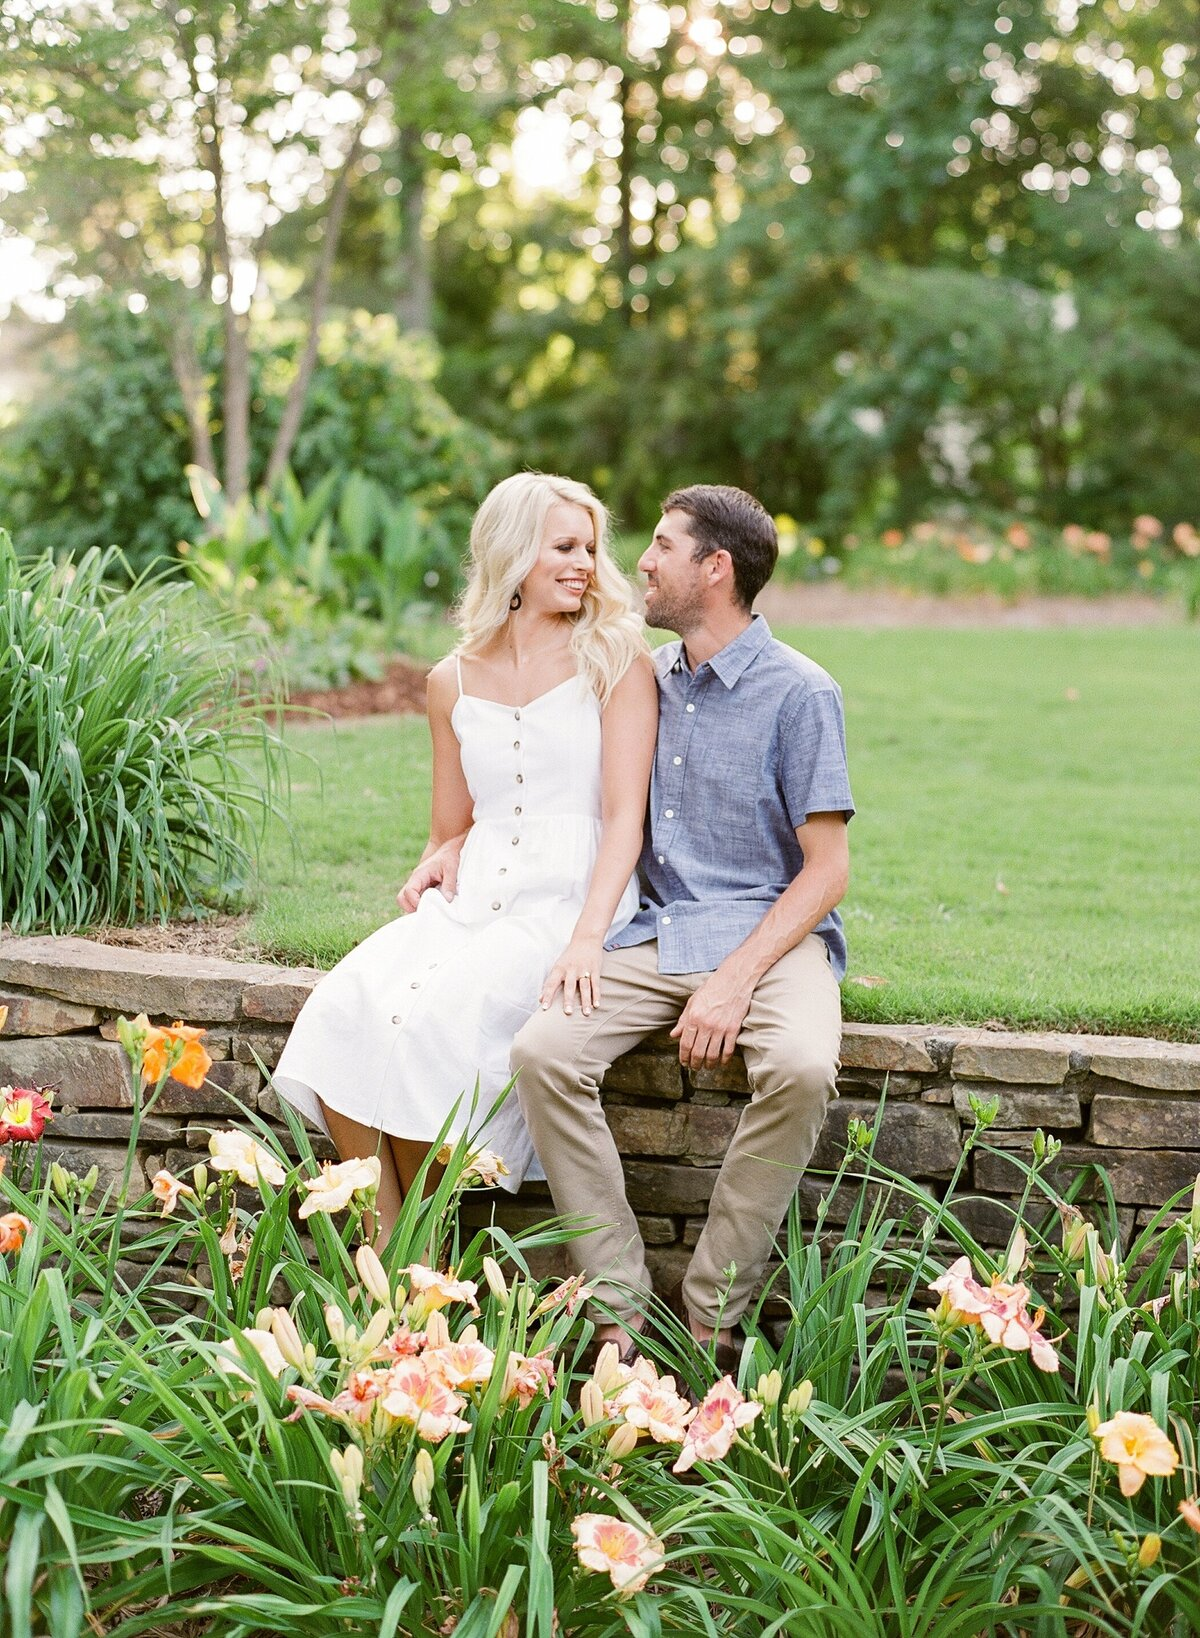 Jessie-Barksdale-Photography_Alabama-Destination-Wedding-Photographer_065